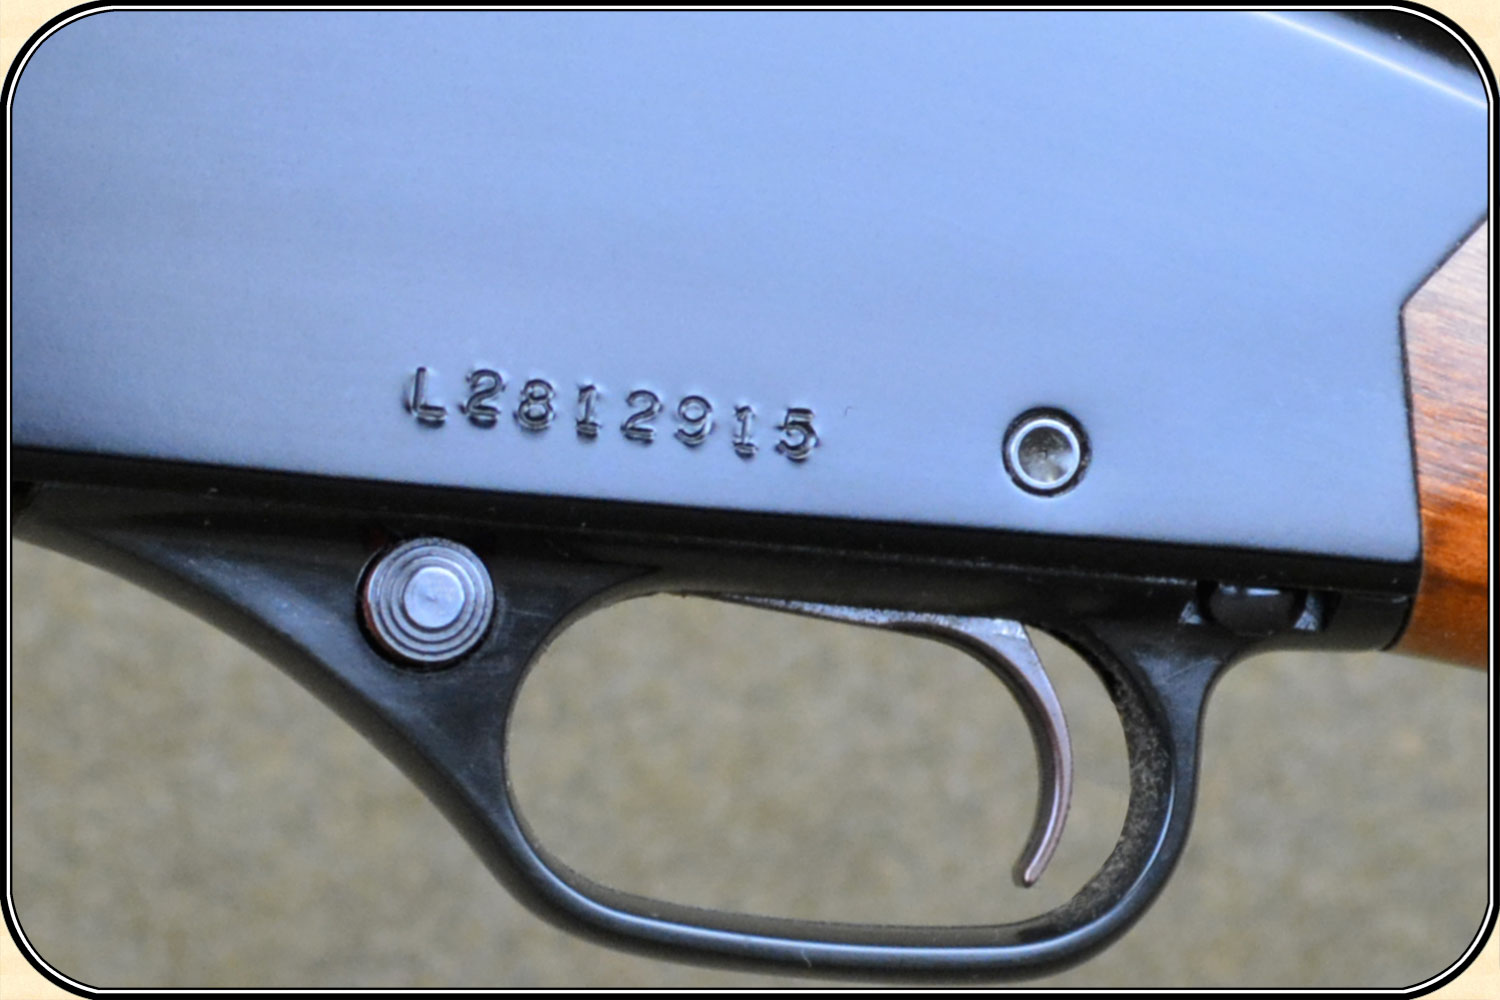 Winchester serial number info